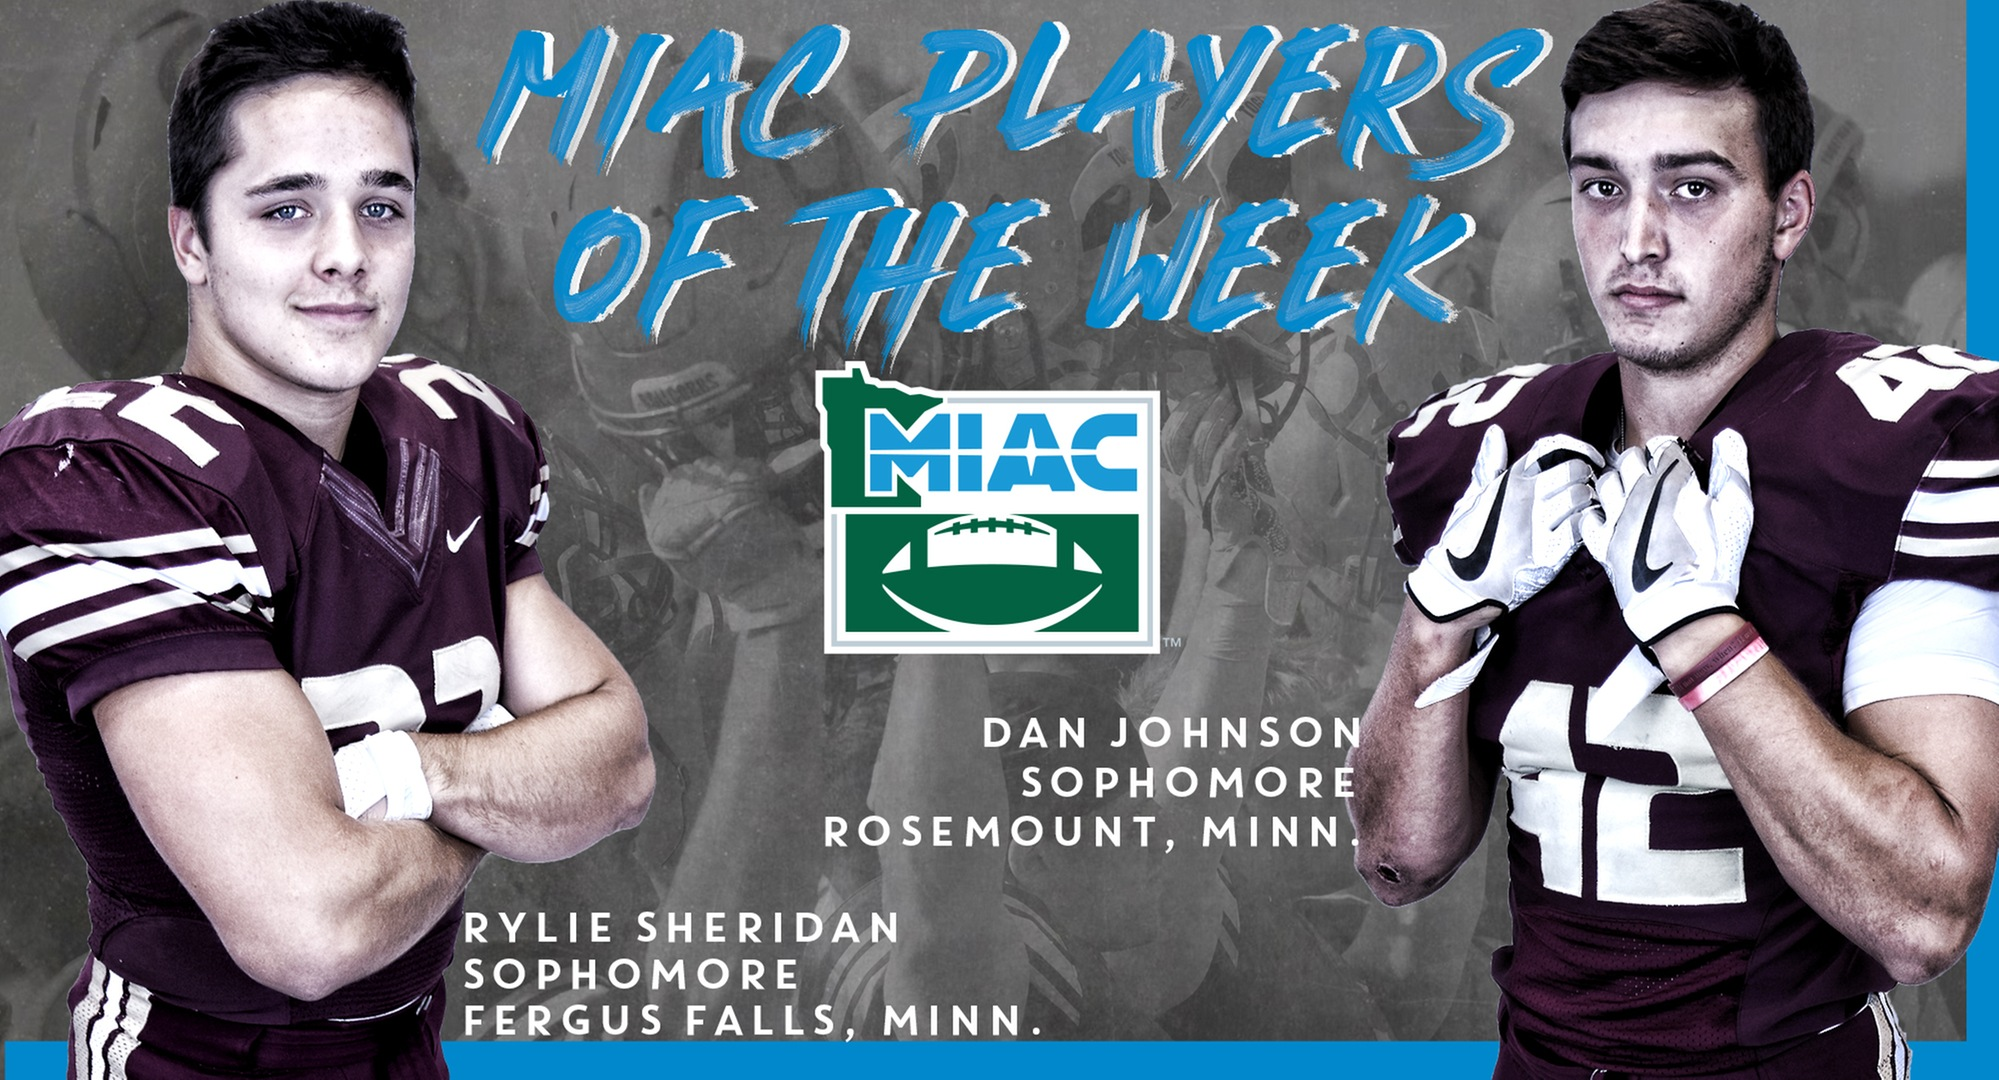 Rylie Sheridan (L) and Dan Johnson were named MIAC Players of the Week.